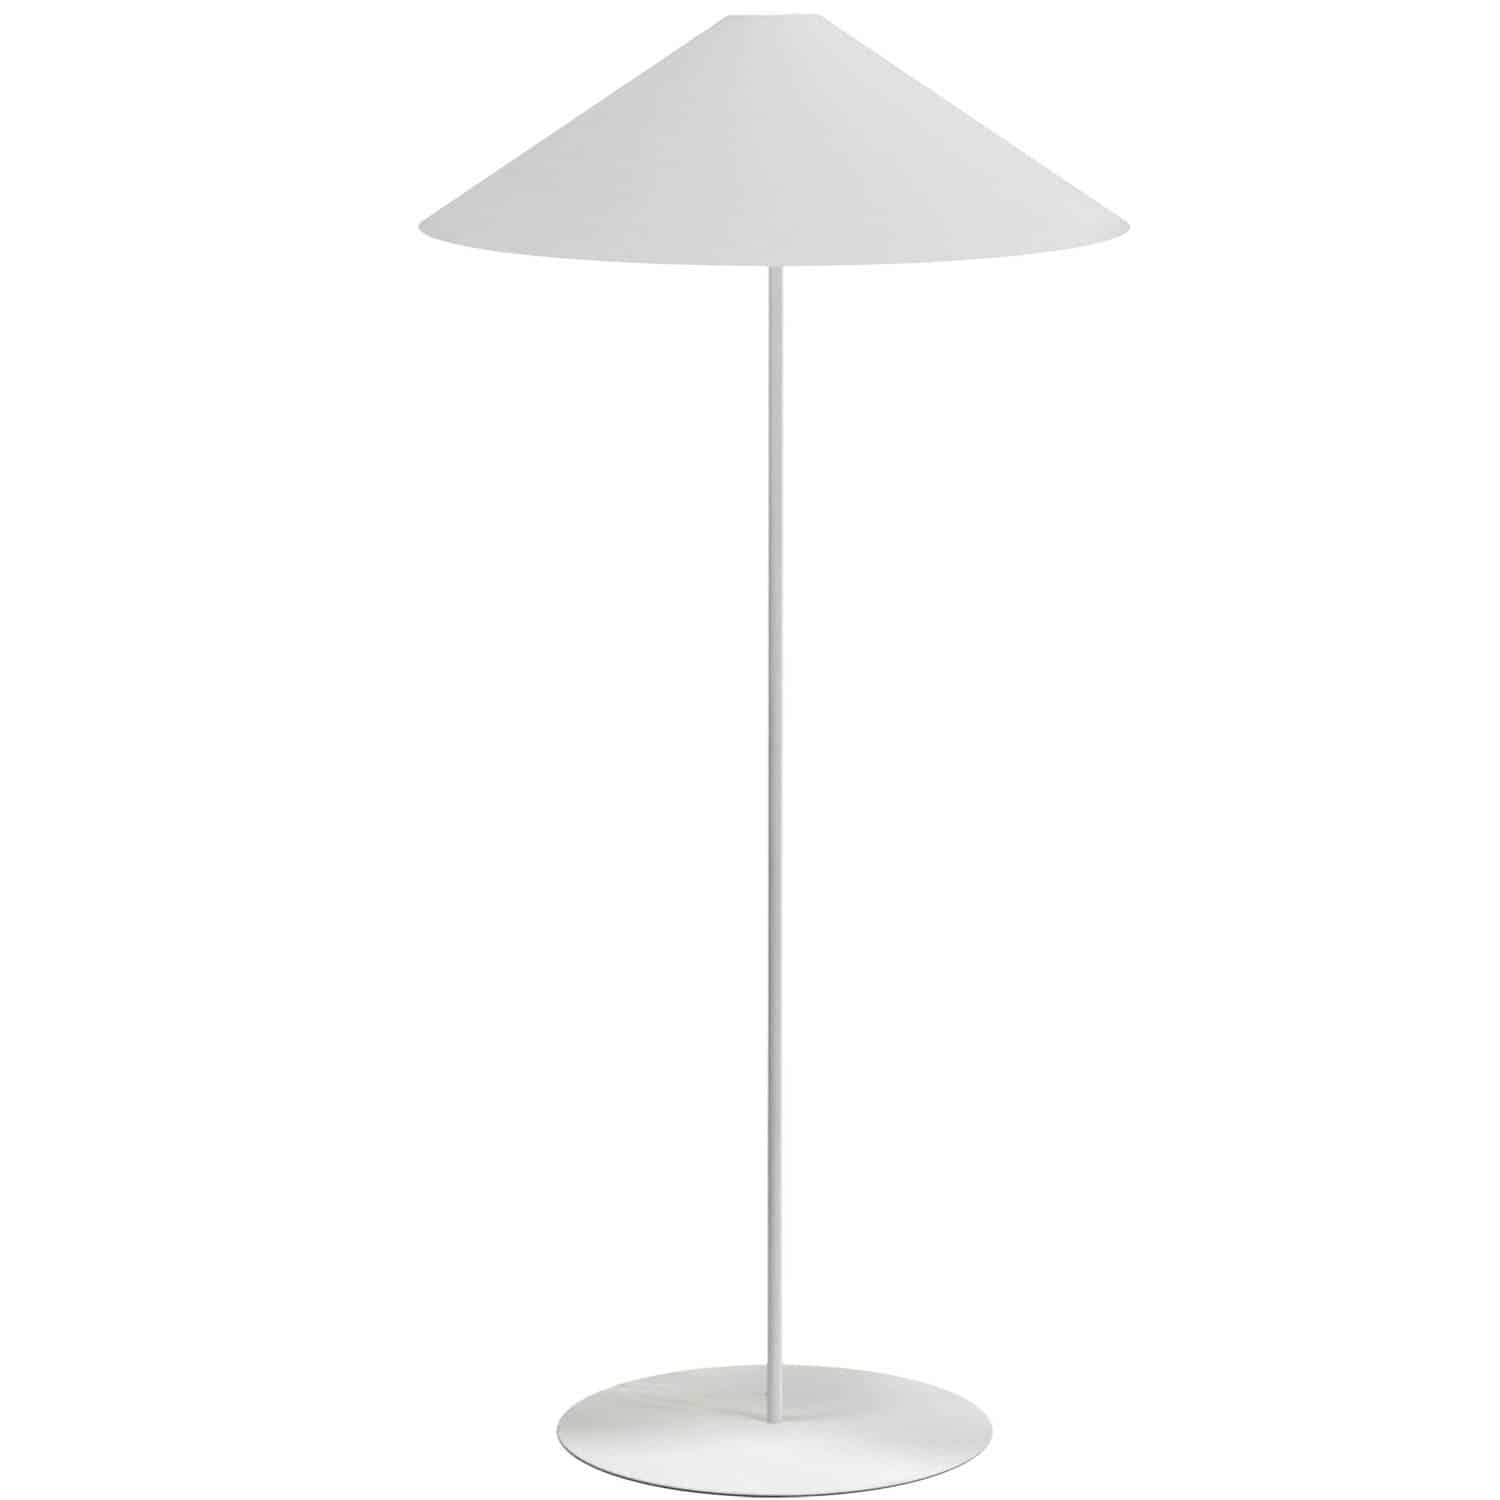 1 Light Trapezoid Floor Lamp w/ White Shade